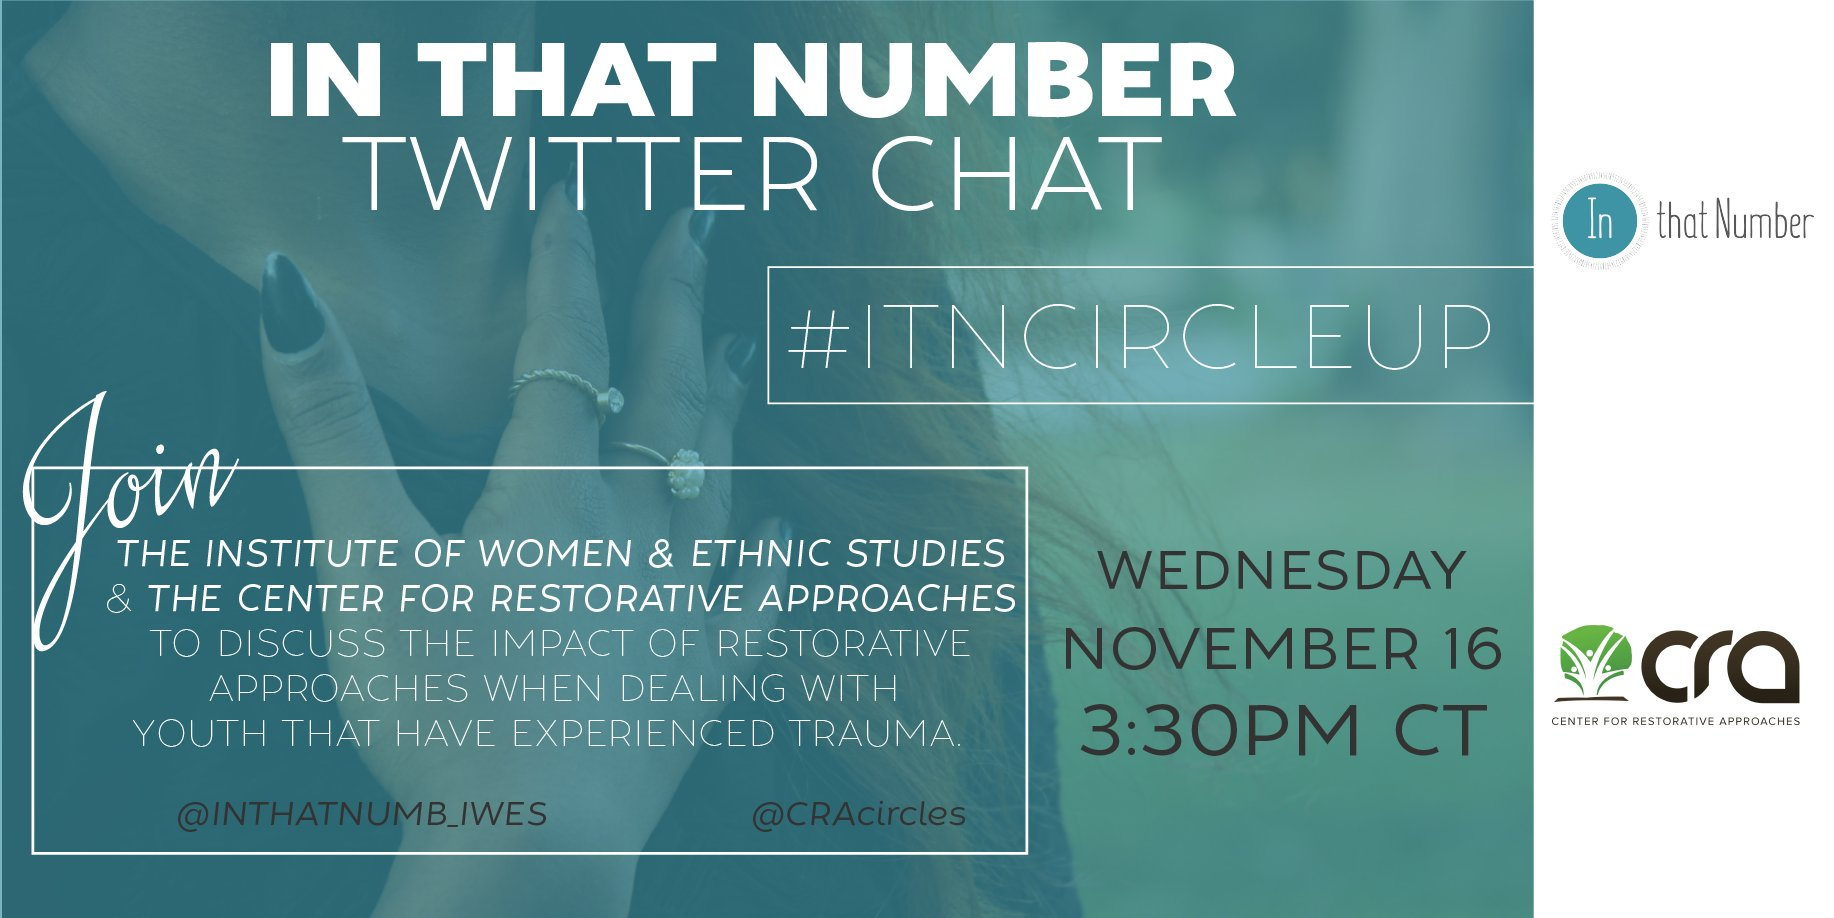 Join us & @CRAcircles on 11/16 for a TW chat to discuss impact of restorative approaches on youth that have experienced trauma. #ITNCircleUp https://t.co/9ihi4r0D9Q